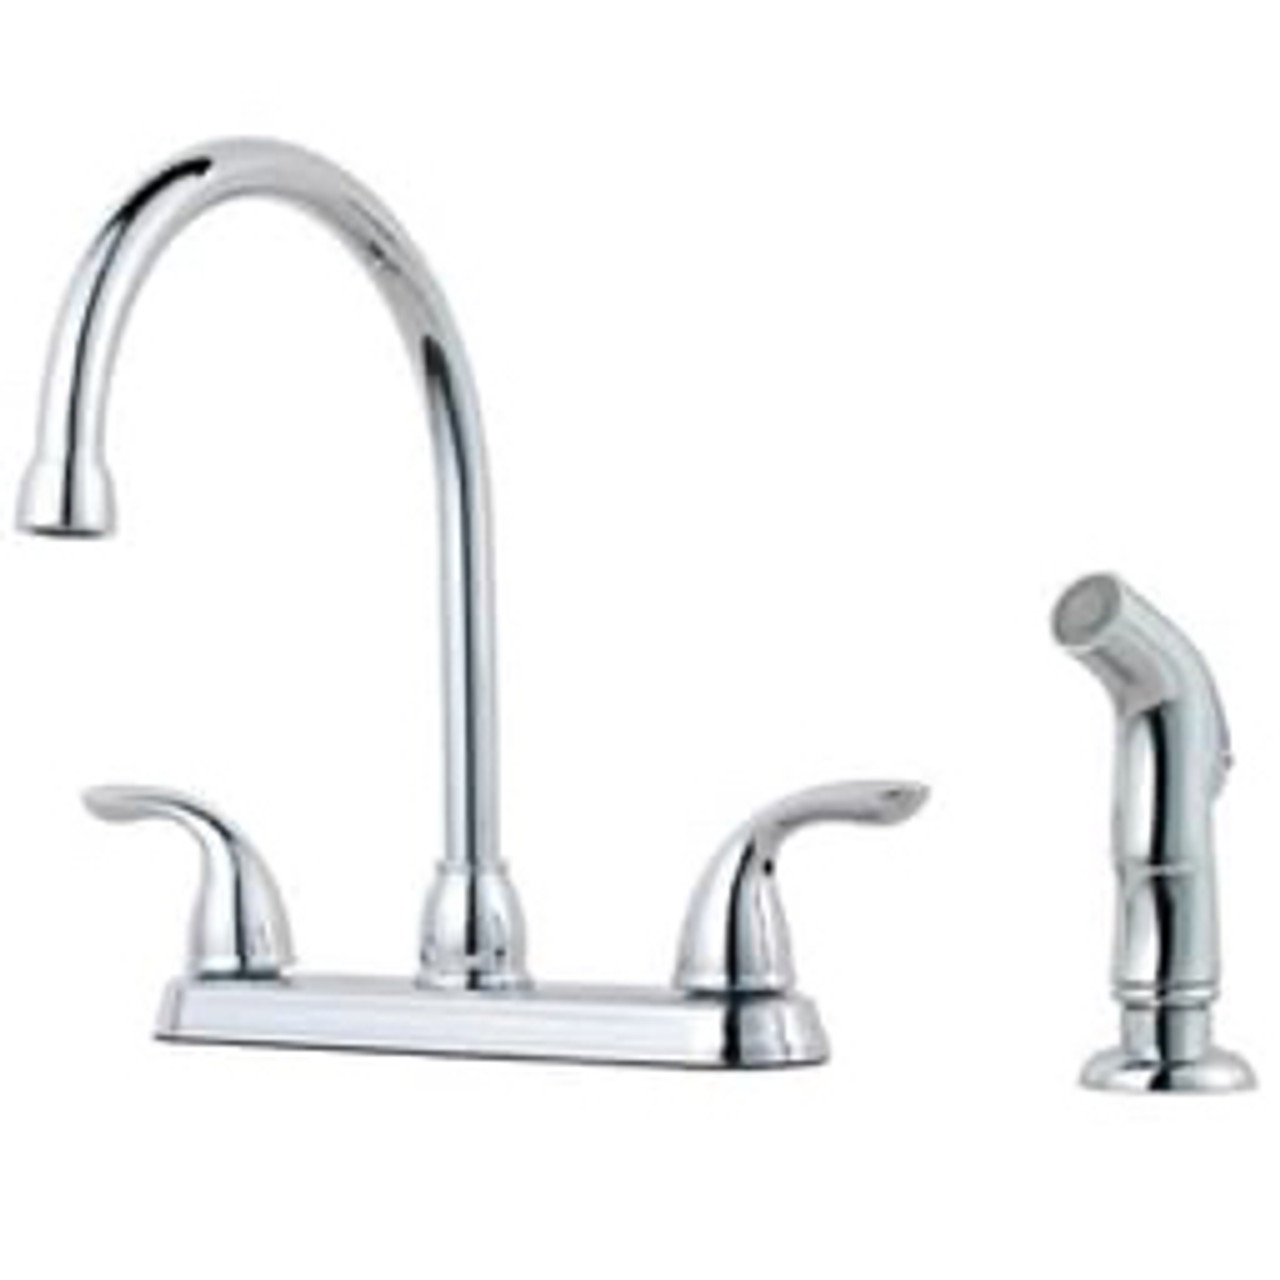 G1365000 Price Pfister Kitchen Faucet 1 8 Gpm 2 Handle